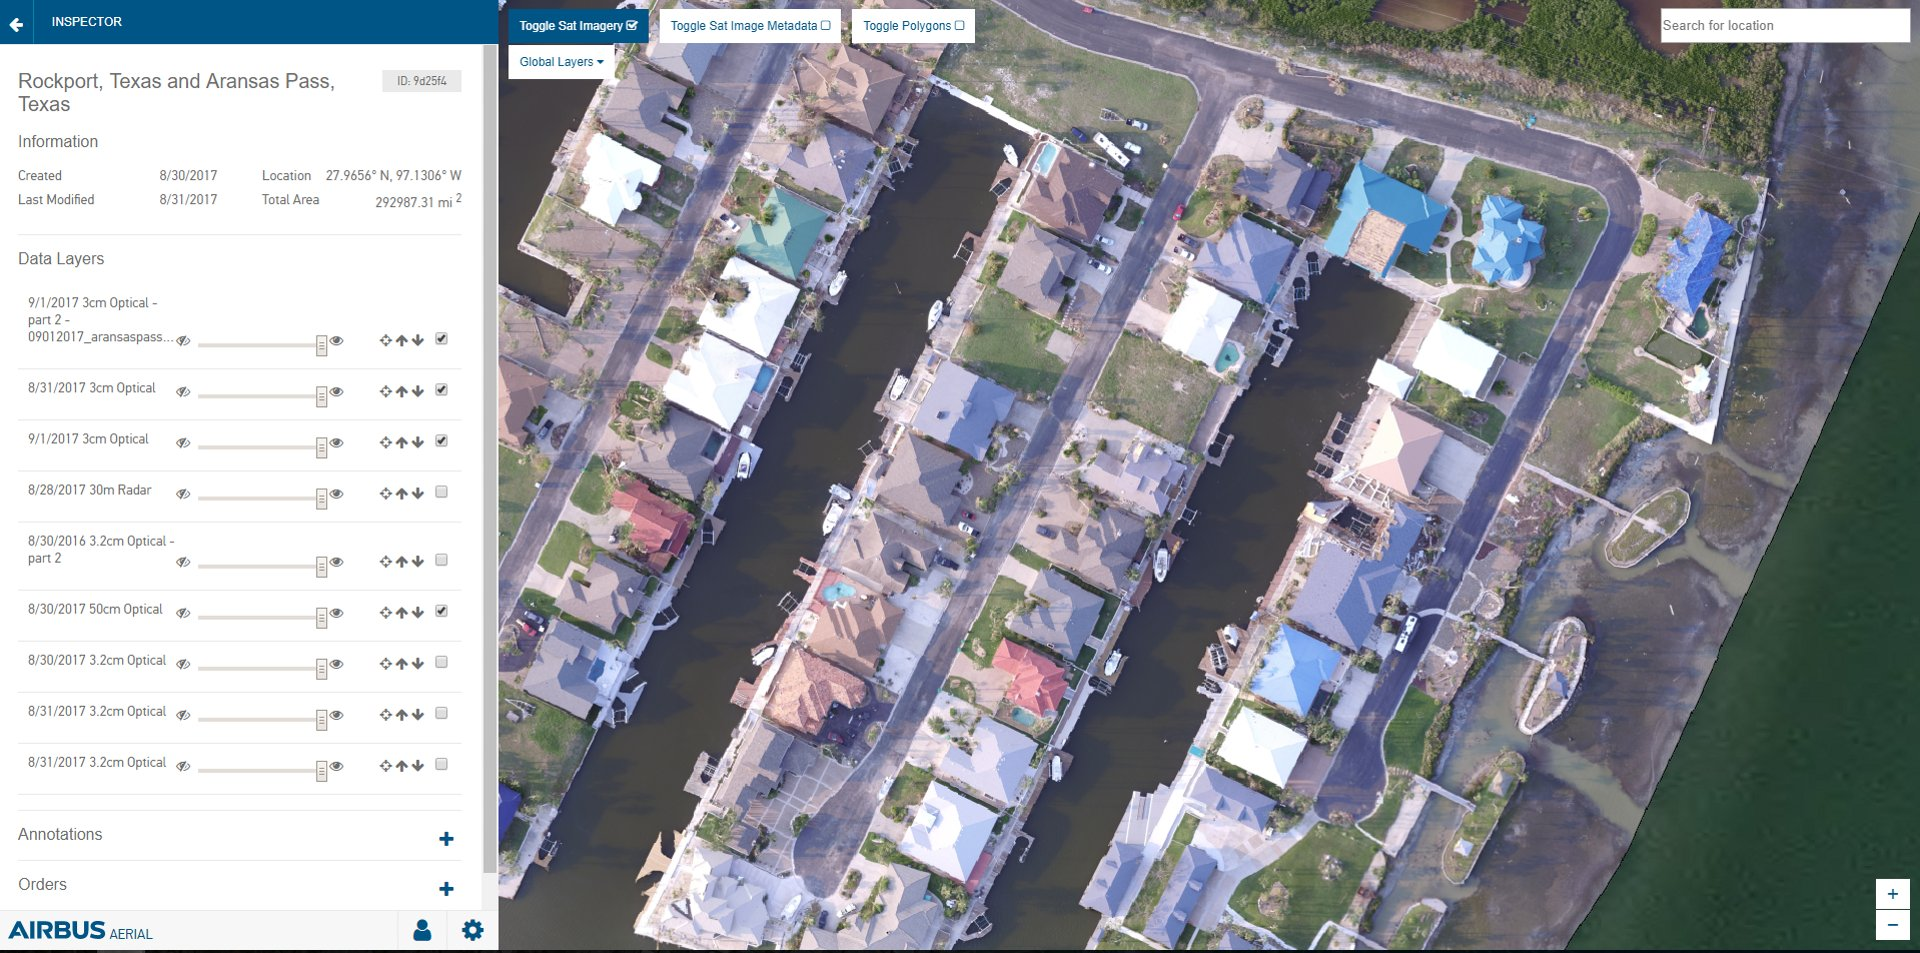 Airbus Aerial is helping hurricane recovery efforts in the southeastern US by granting insurance companies access to its library of aerial base maps and data analytics of the affected region. The sample above shows the company's drone-captured imagery with data layers of Rockport, Texas.